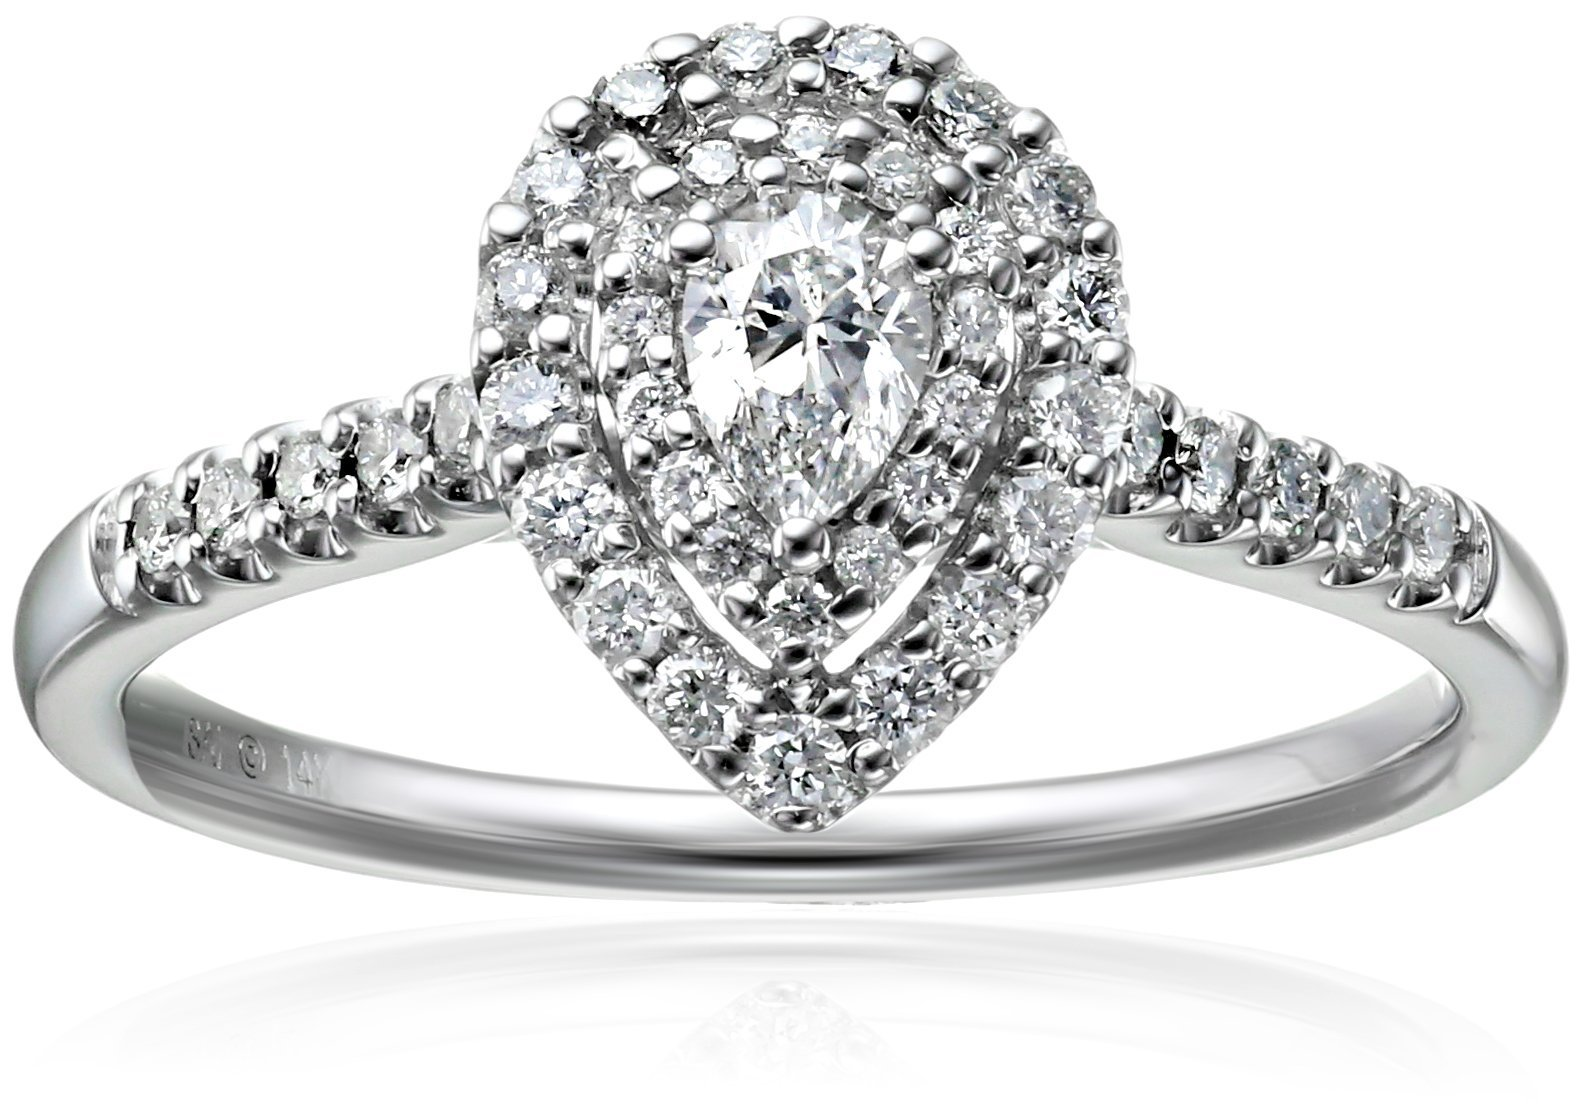 14k White Gold 1/2CTTW Diamond Pear Shape Halo Bridal Engagement Ring (1/2cttw, H-I Color, I2 Clarity), Size 7